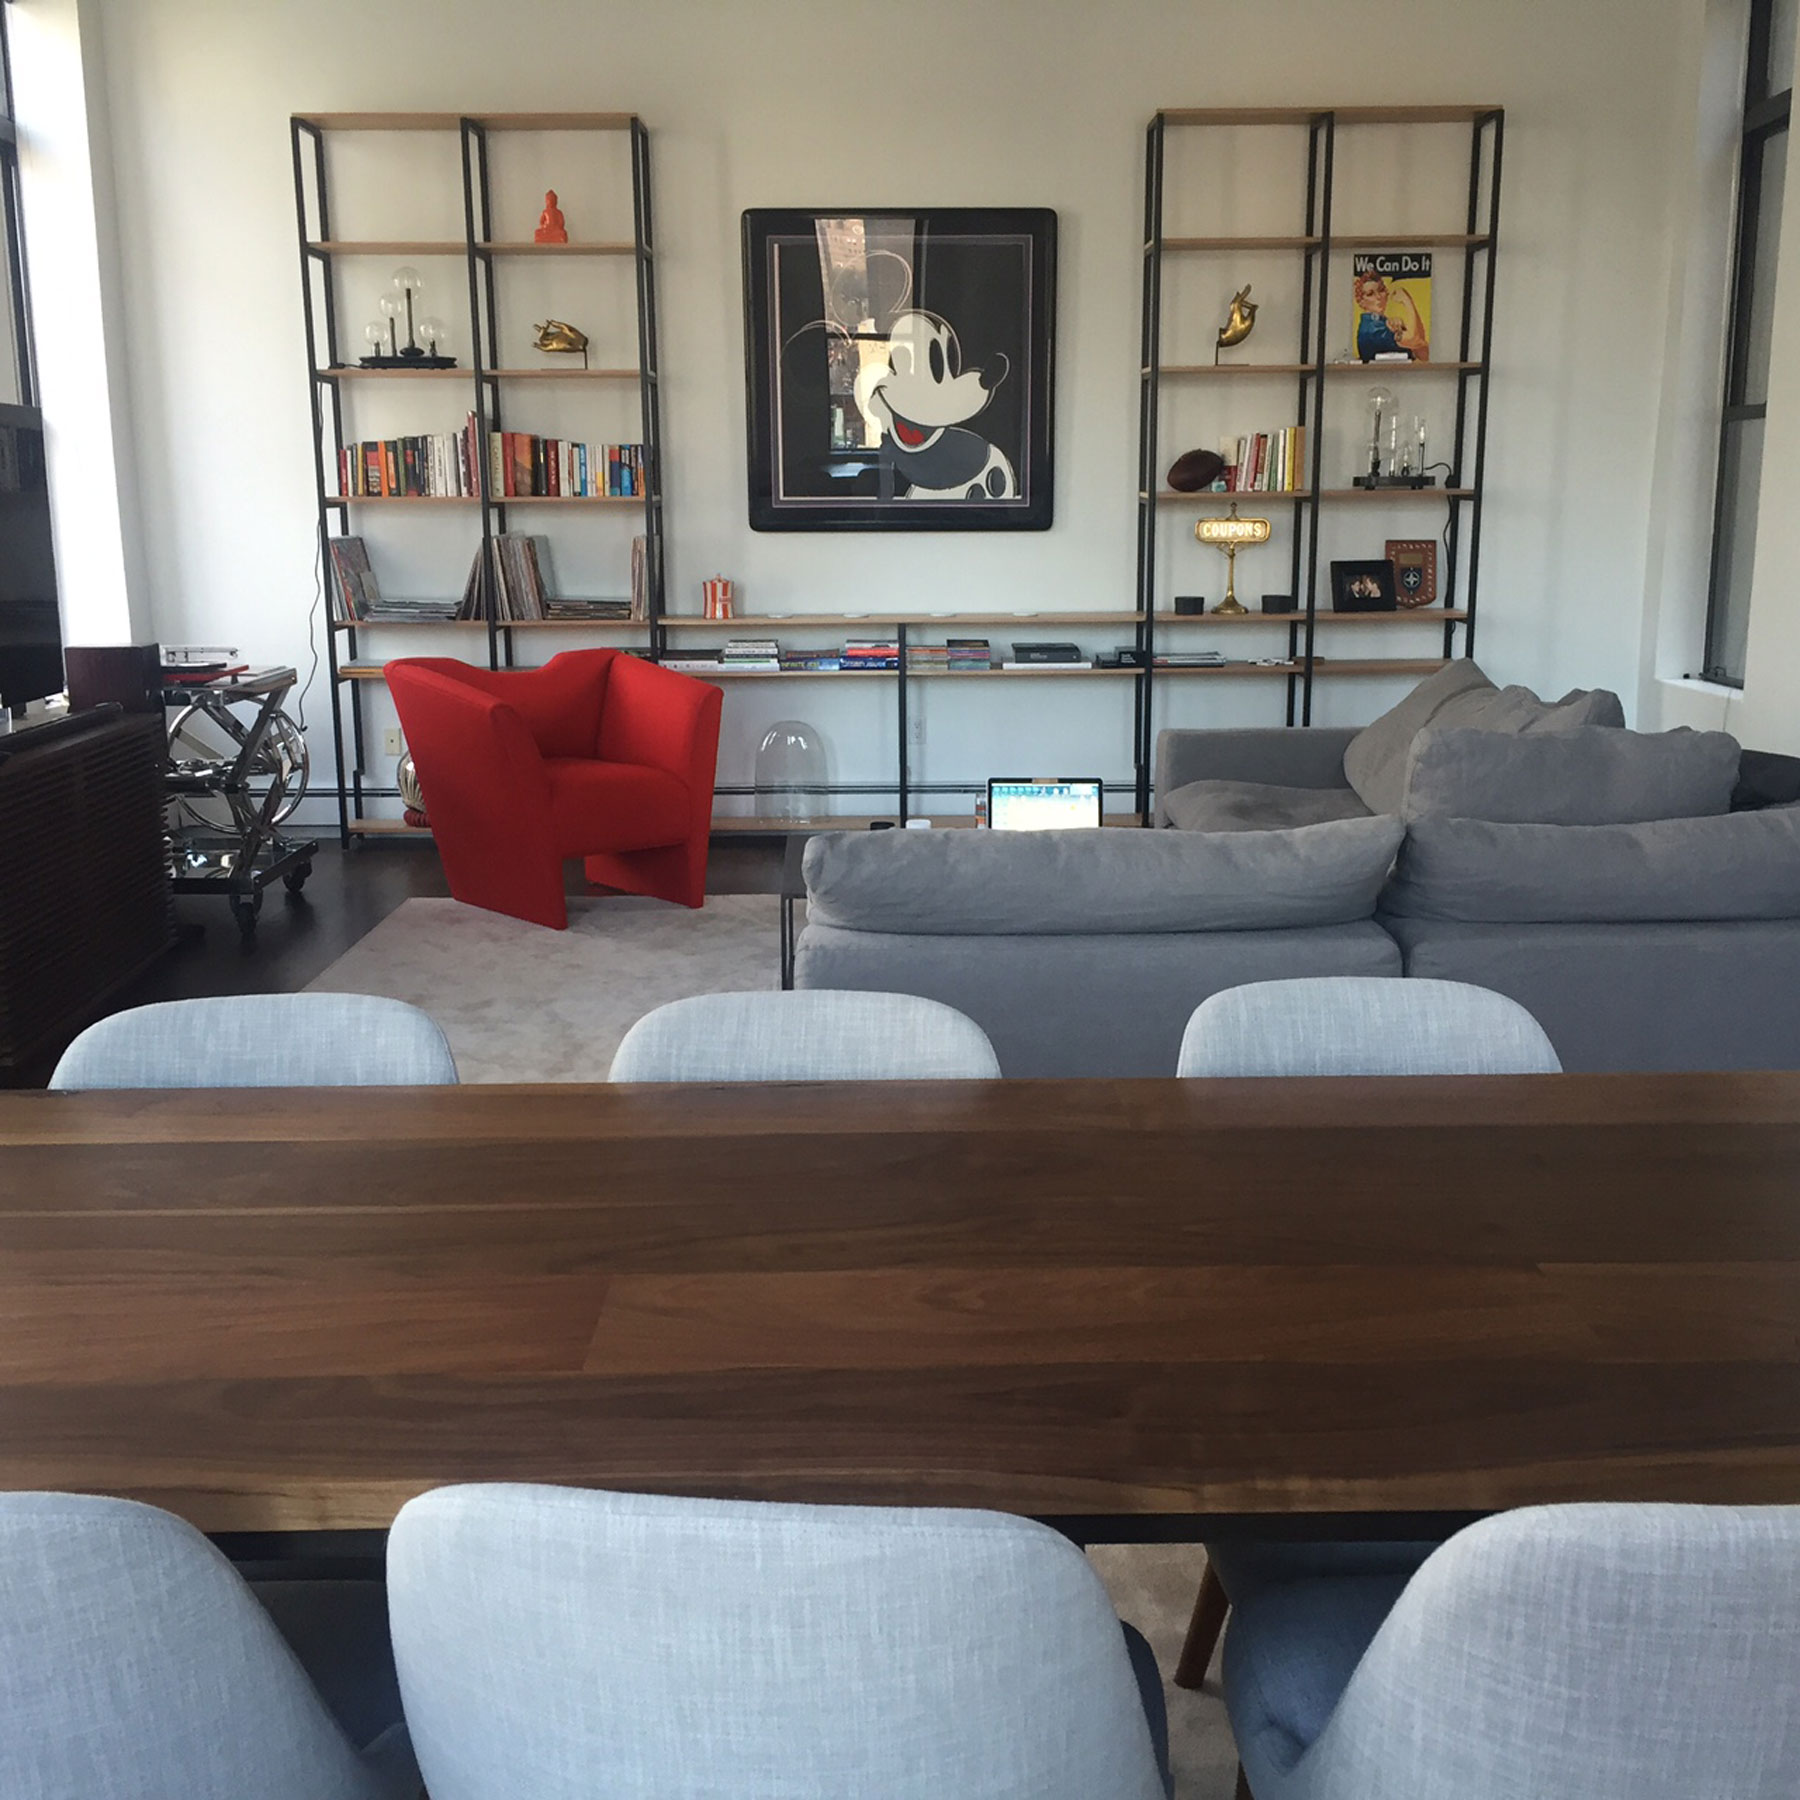 Custom Walnut Dining Table, Shelving and Lounge Chair by SentientCustom Shelving and Lounge Chair by Sentient